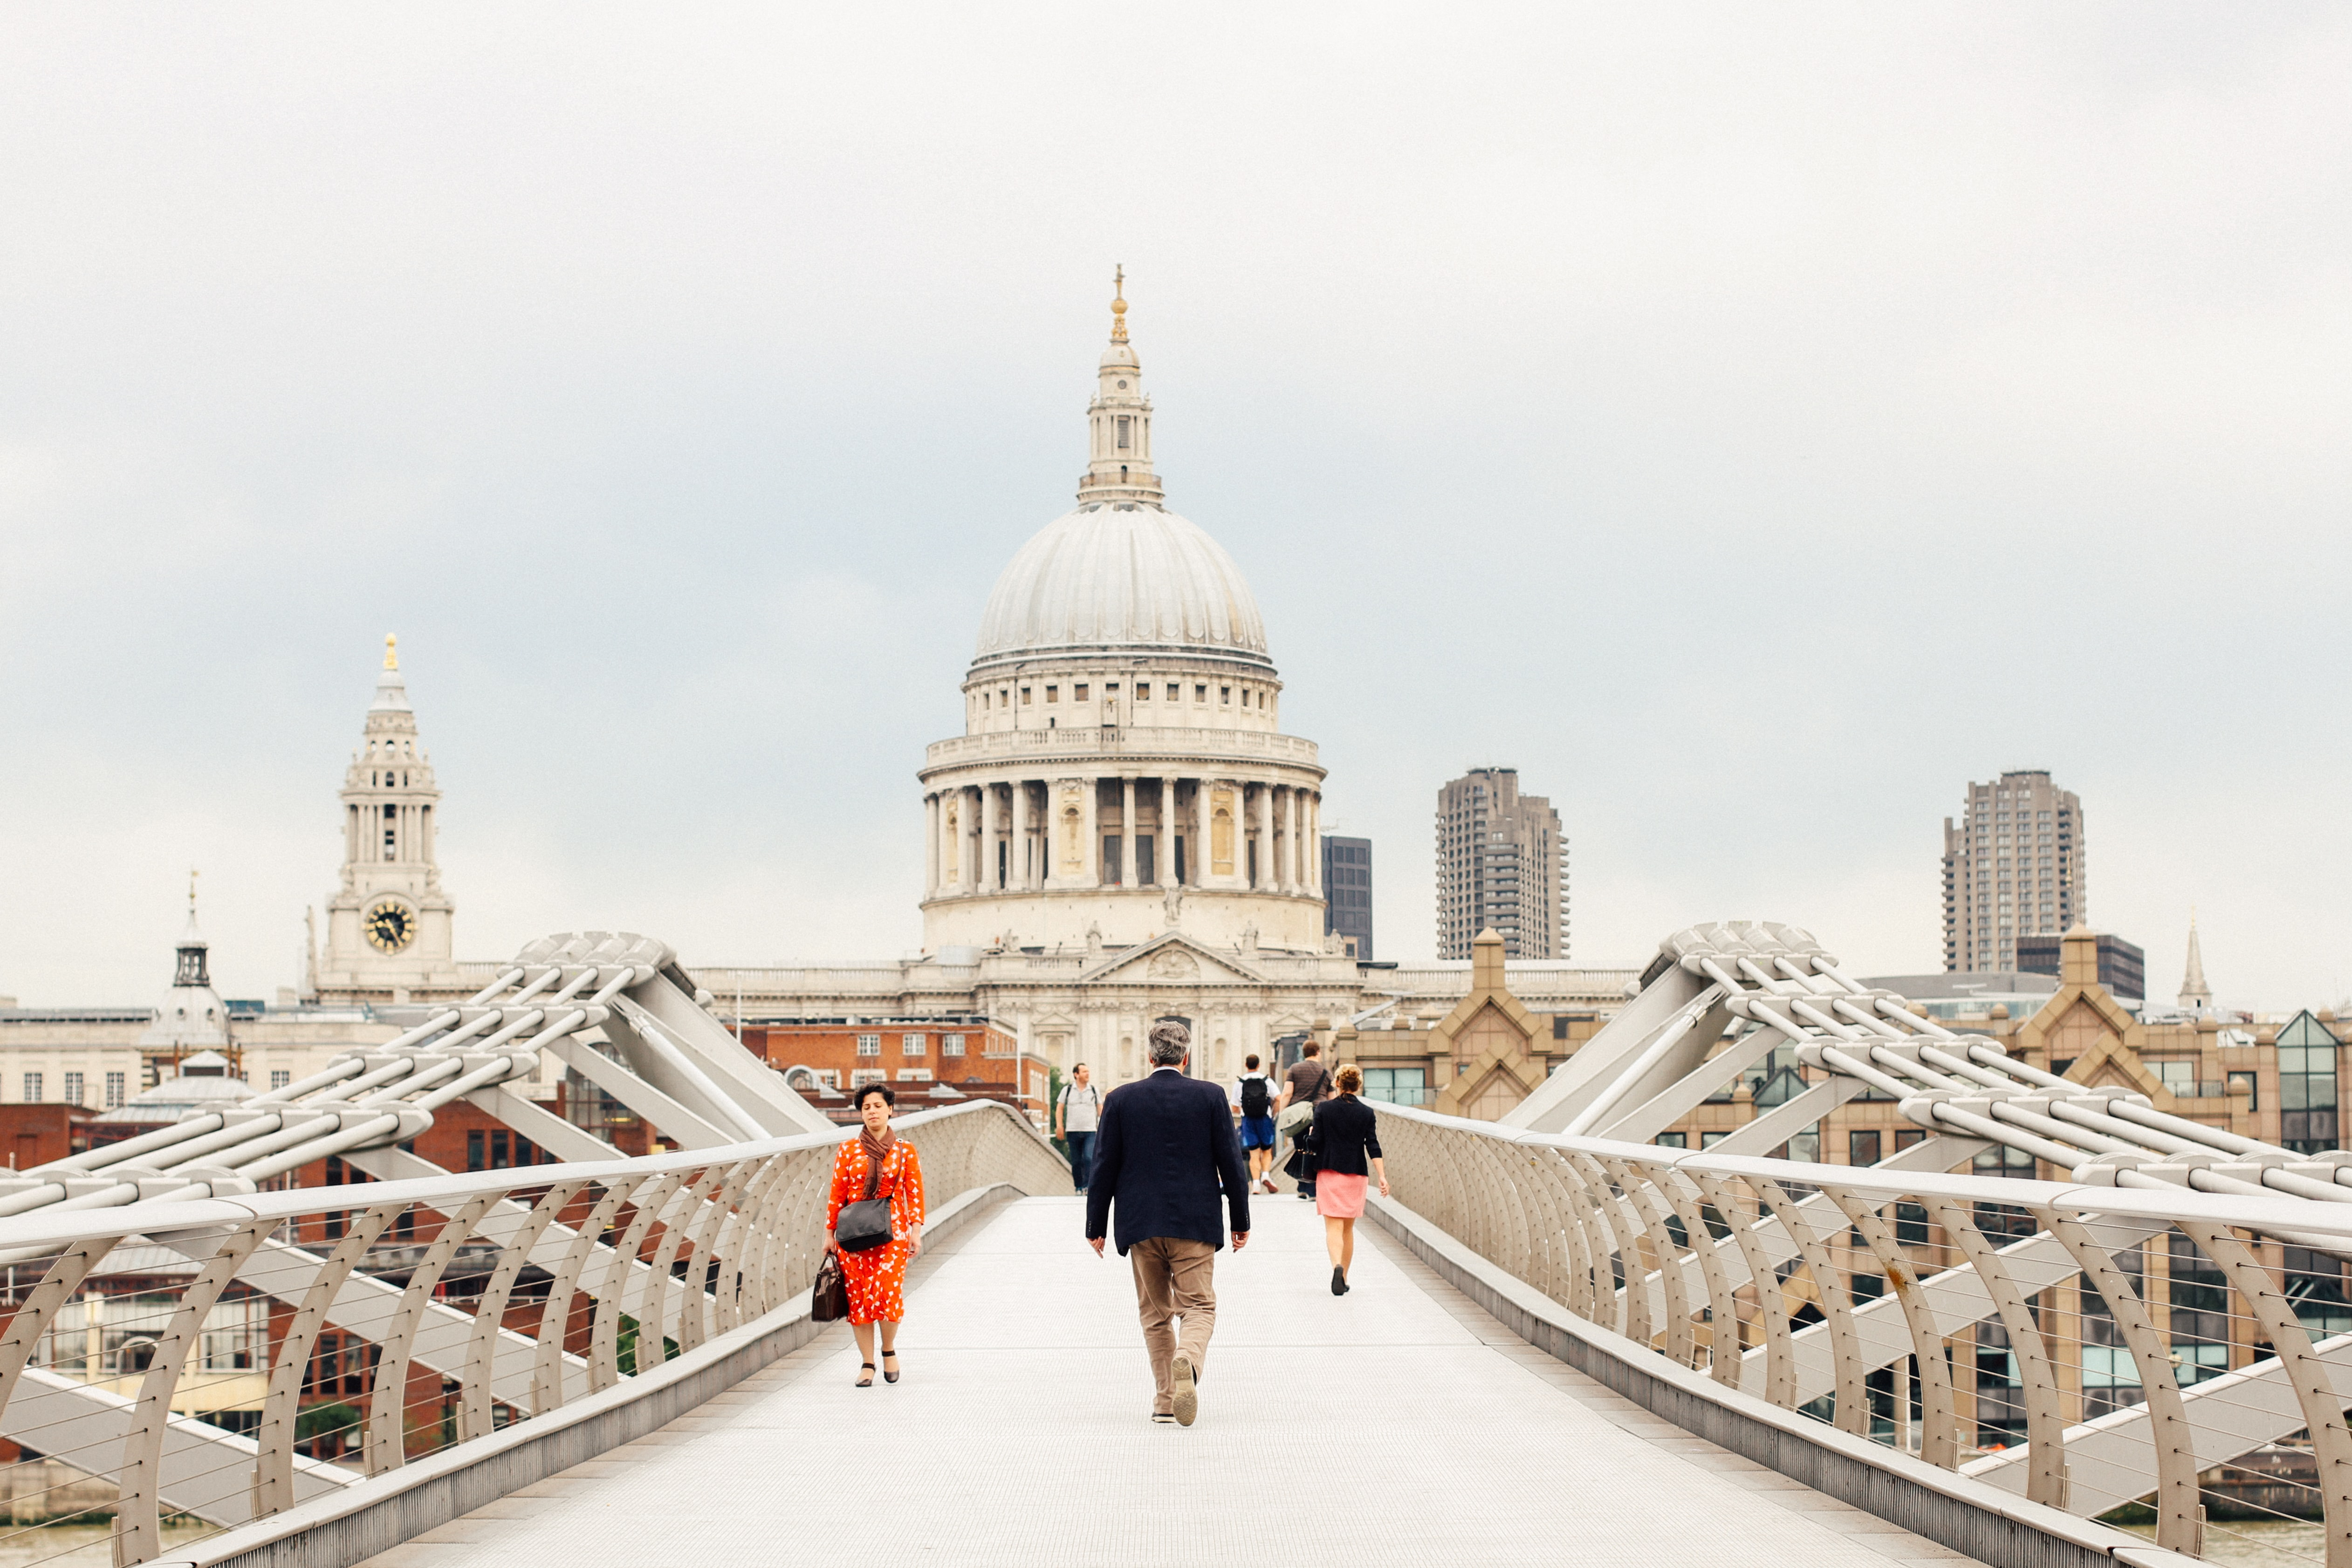 People walking over Millennium Bridge towards St. Paul's Church in London